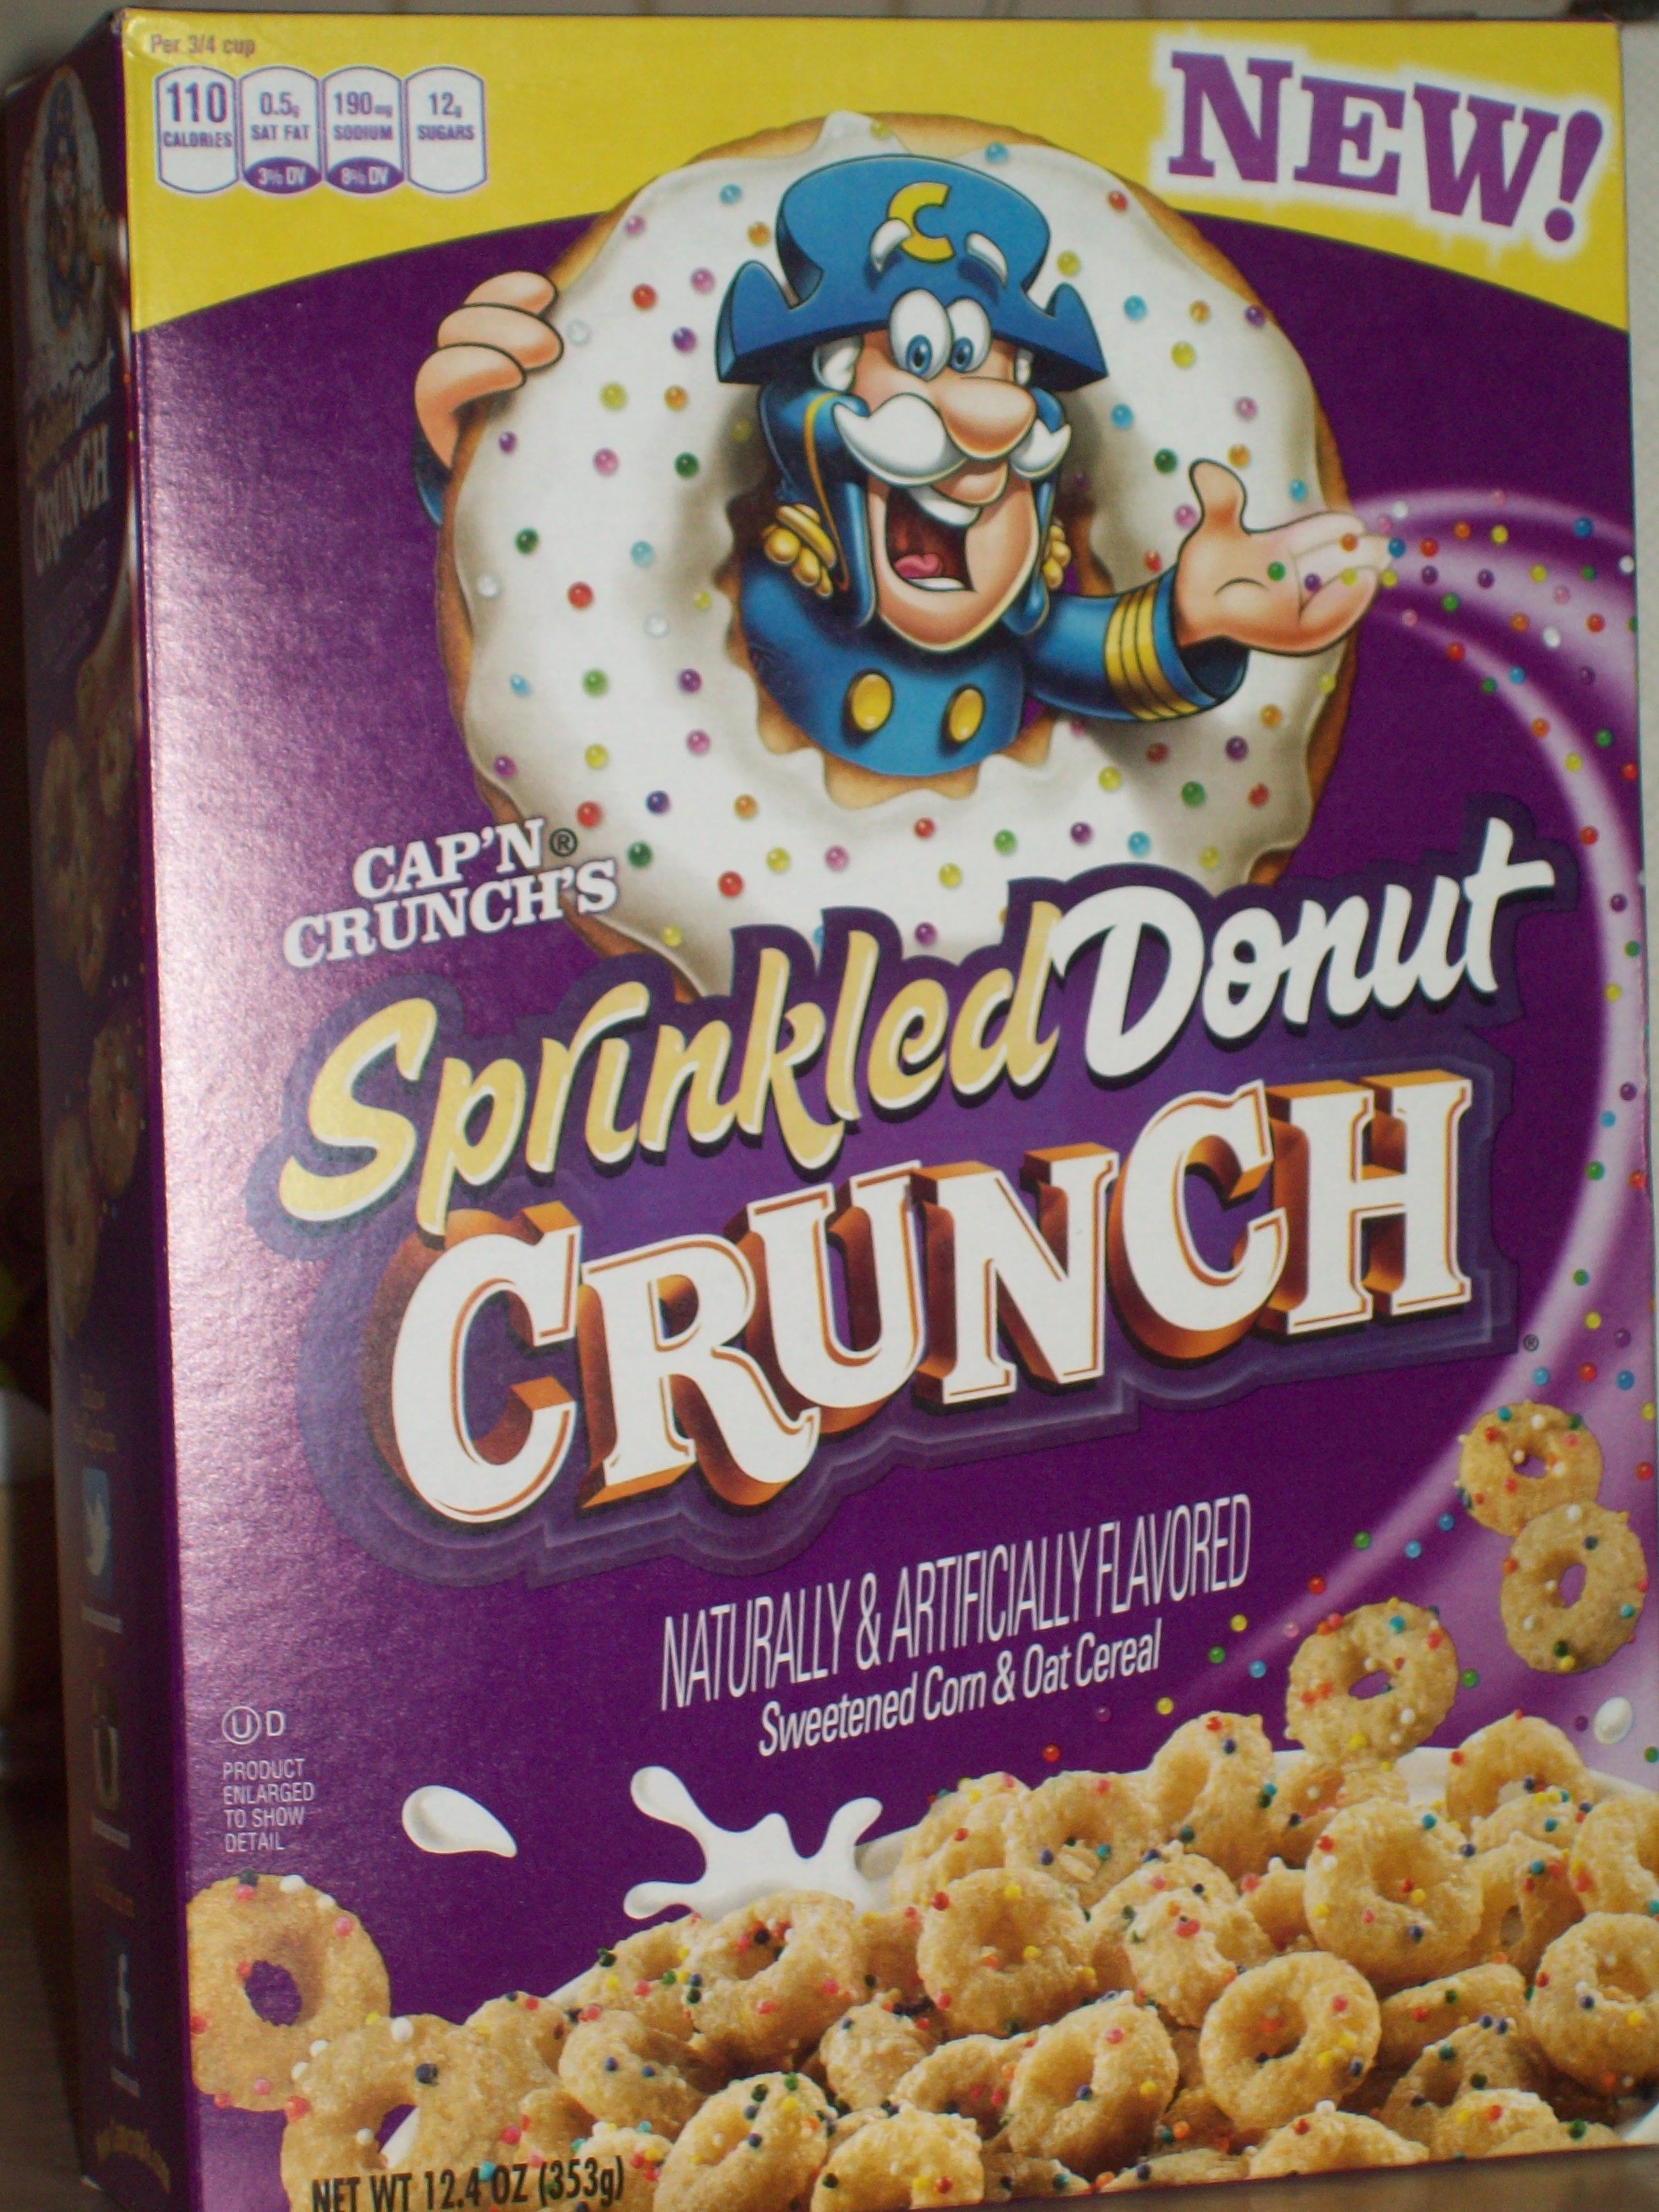 The Cereal Report: Cap'n Crunch's Sprinkled Donut Crunch